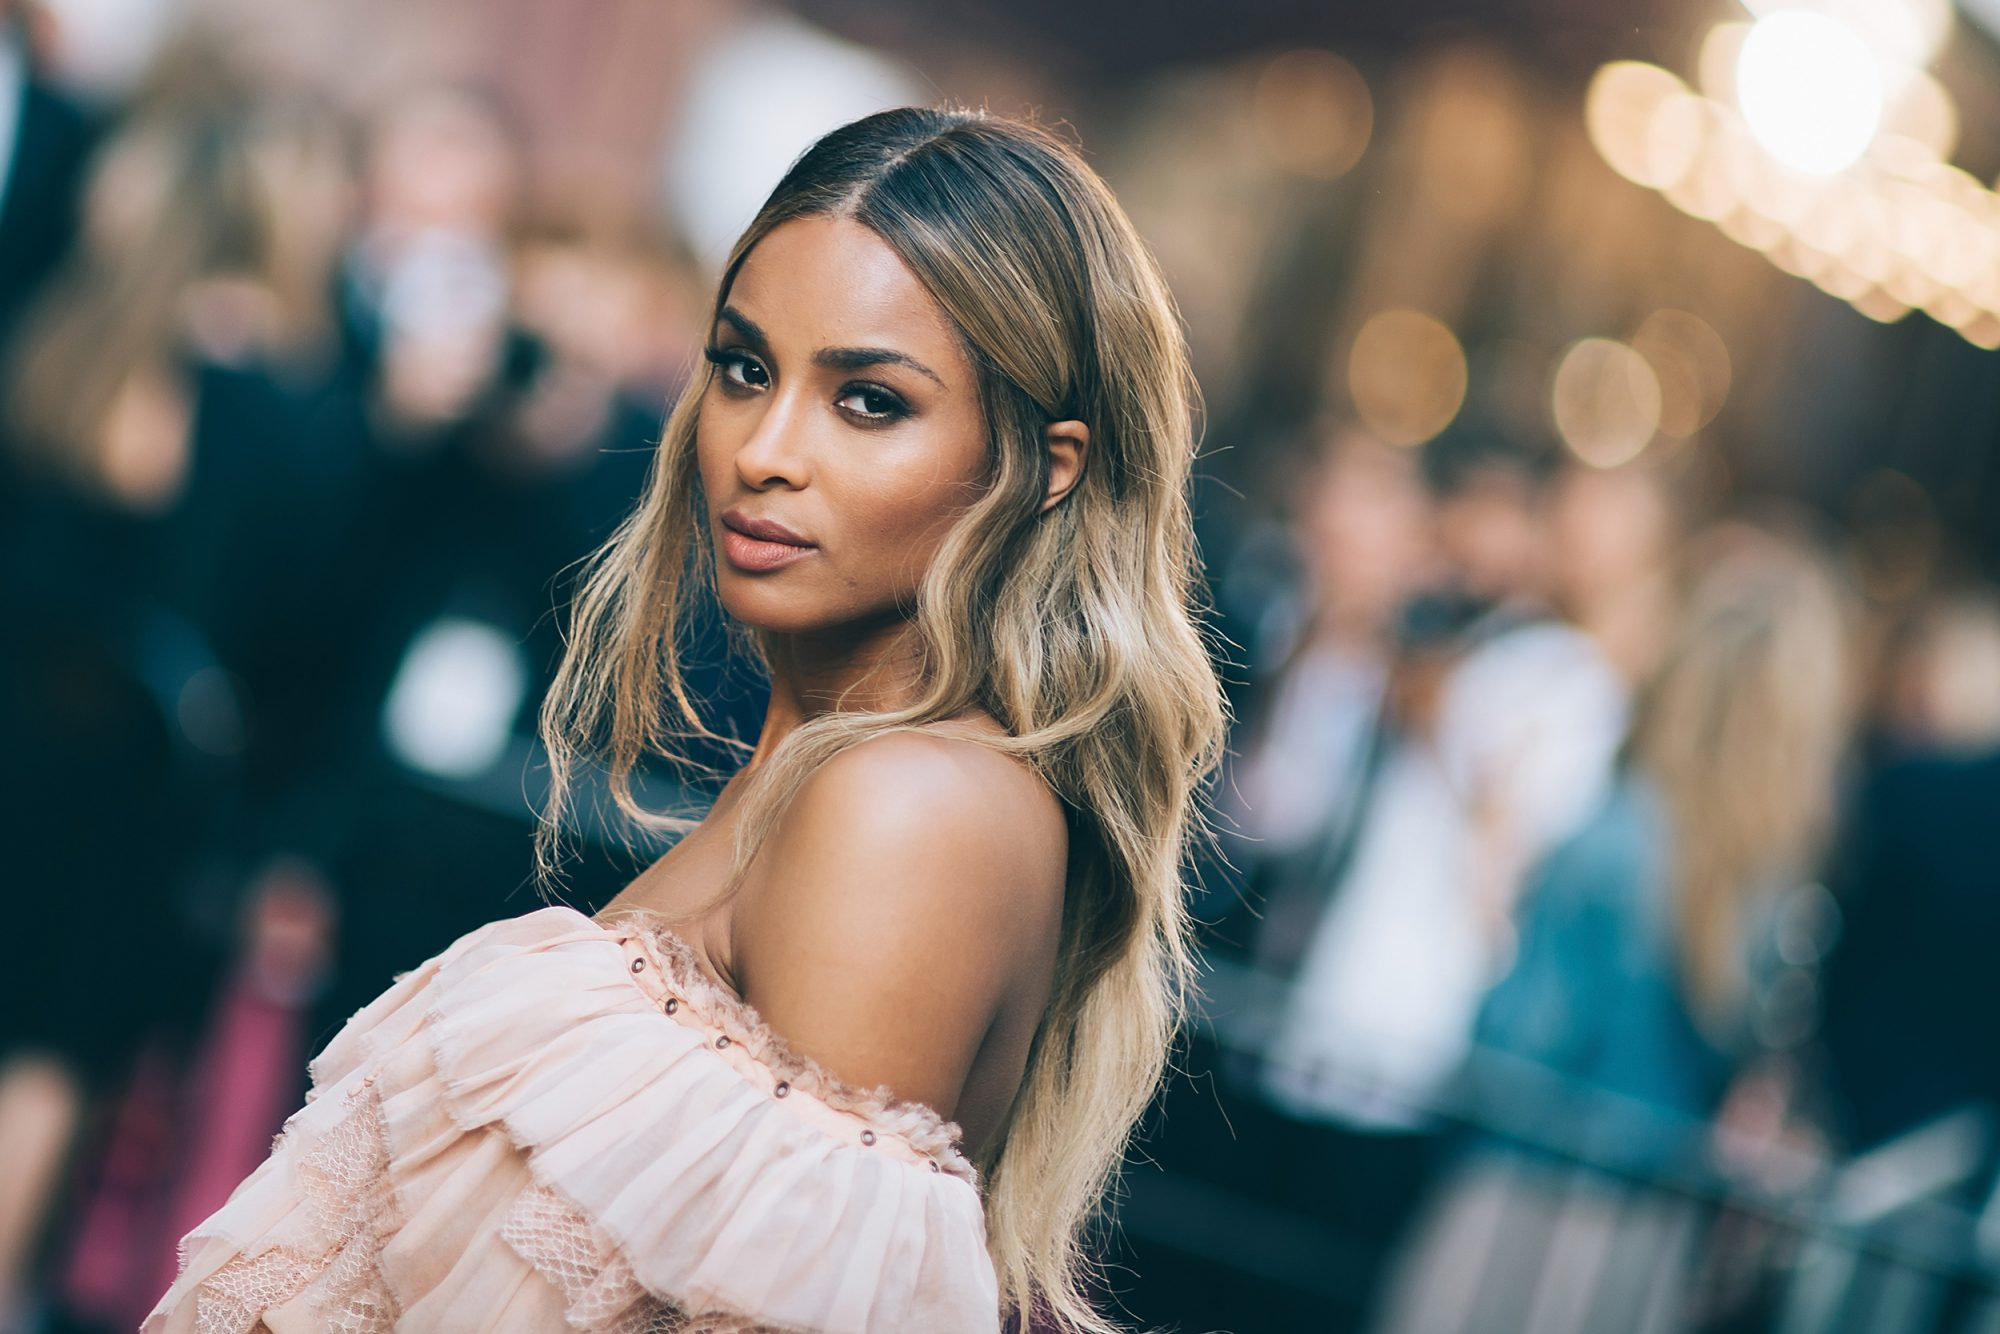 Roundup of items under $50 from Ciara's Amazon gift guide